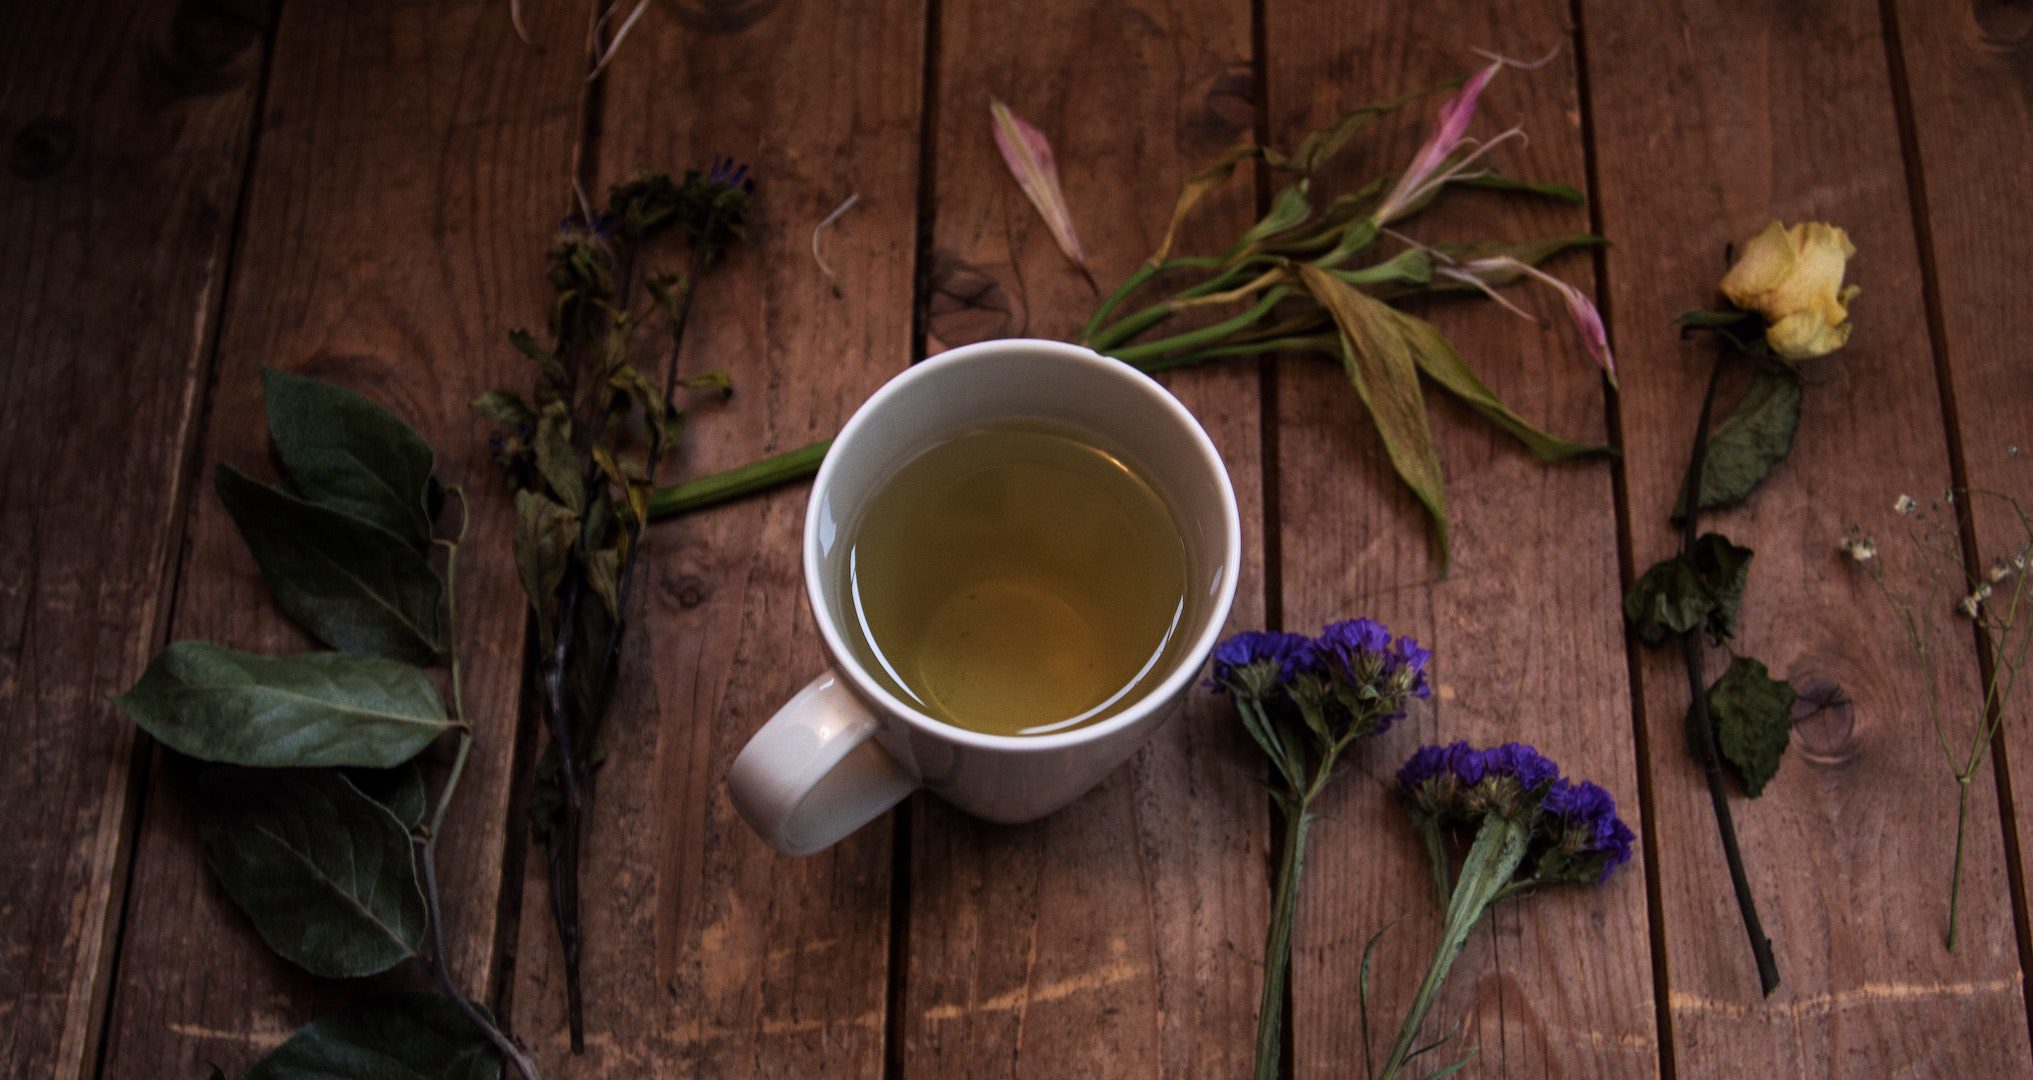 green tea in a mug surrounded by dried flowers on a table